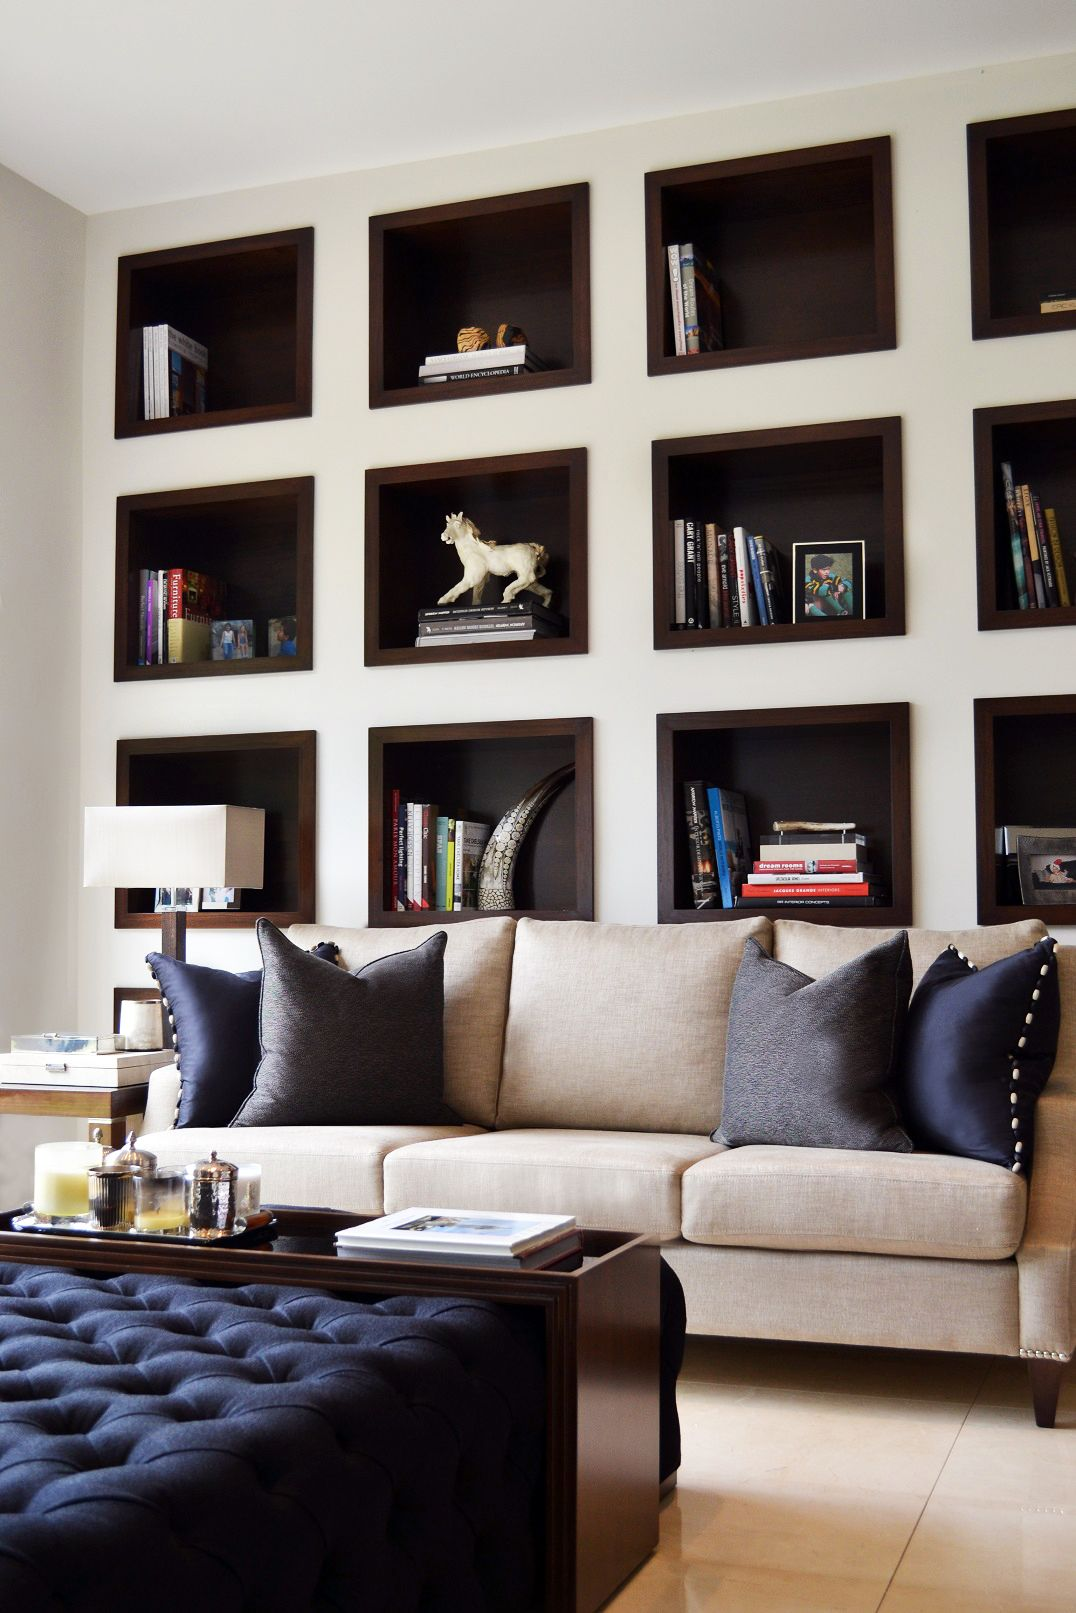 Pin By Chaker On Lounge Home Living Room Living Room Designs Interior Design